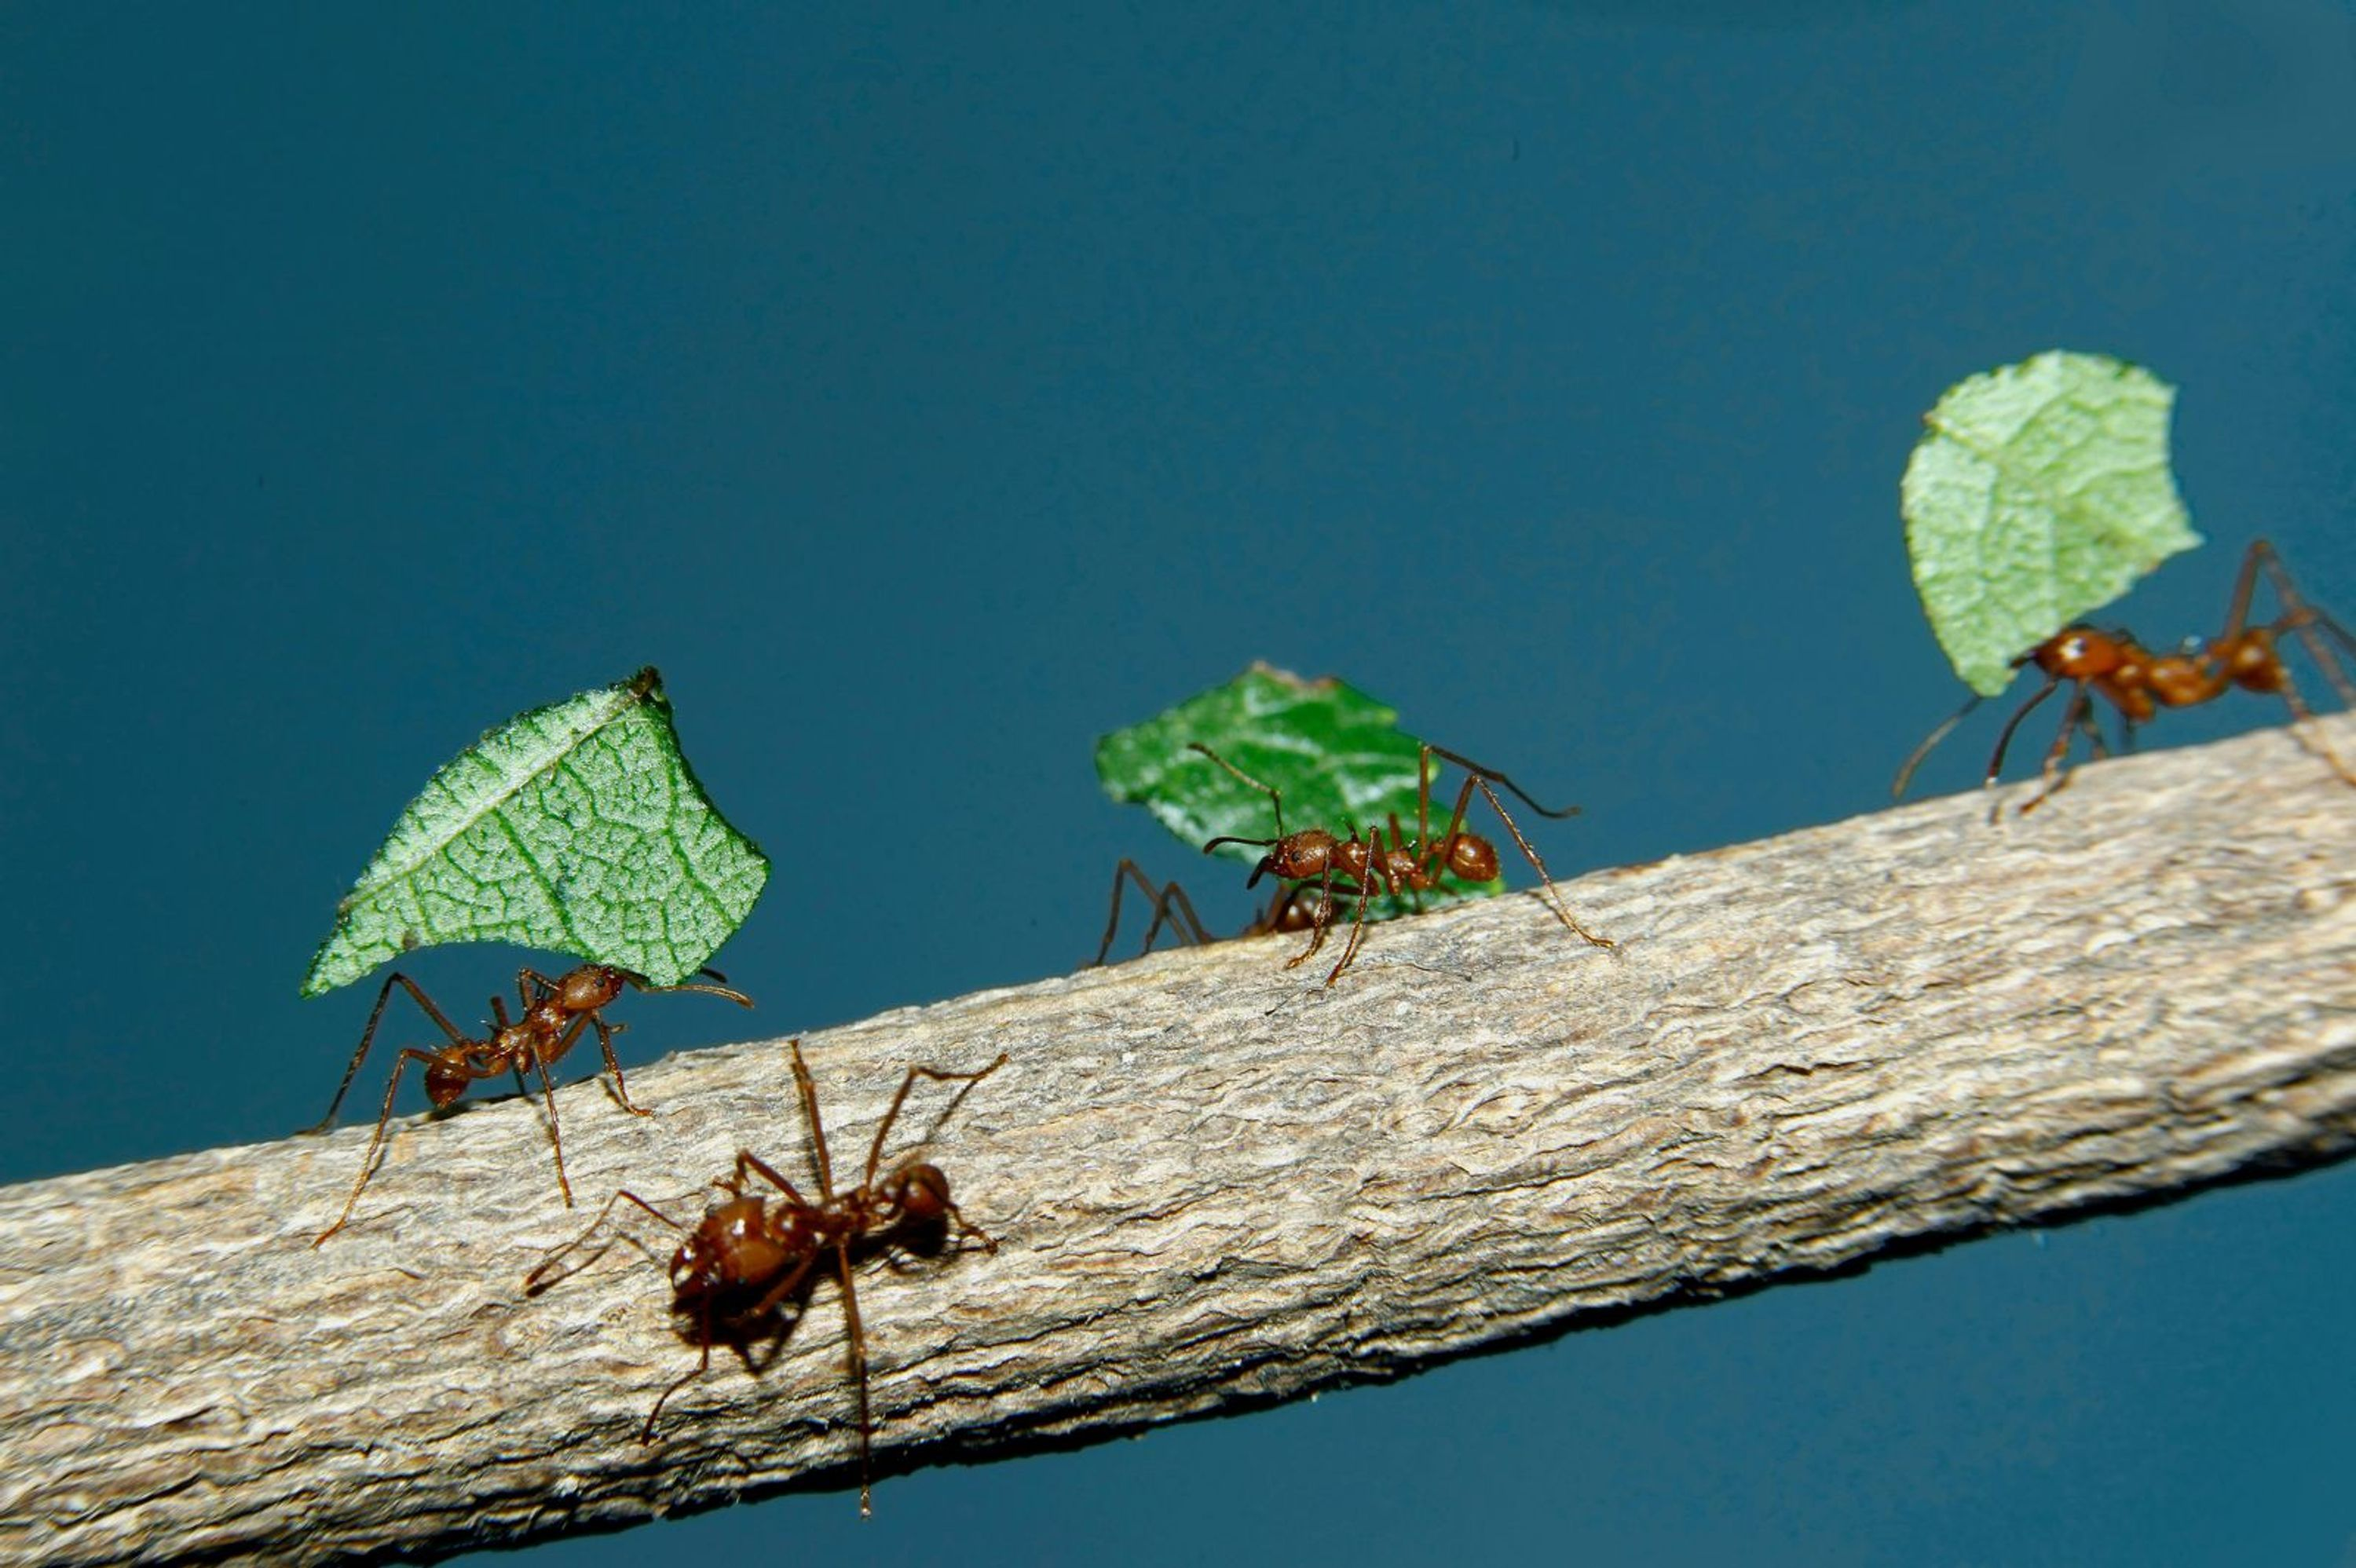 a few ants on a tree branch each carrying their own leaf